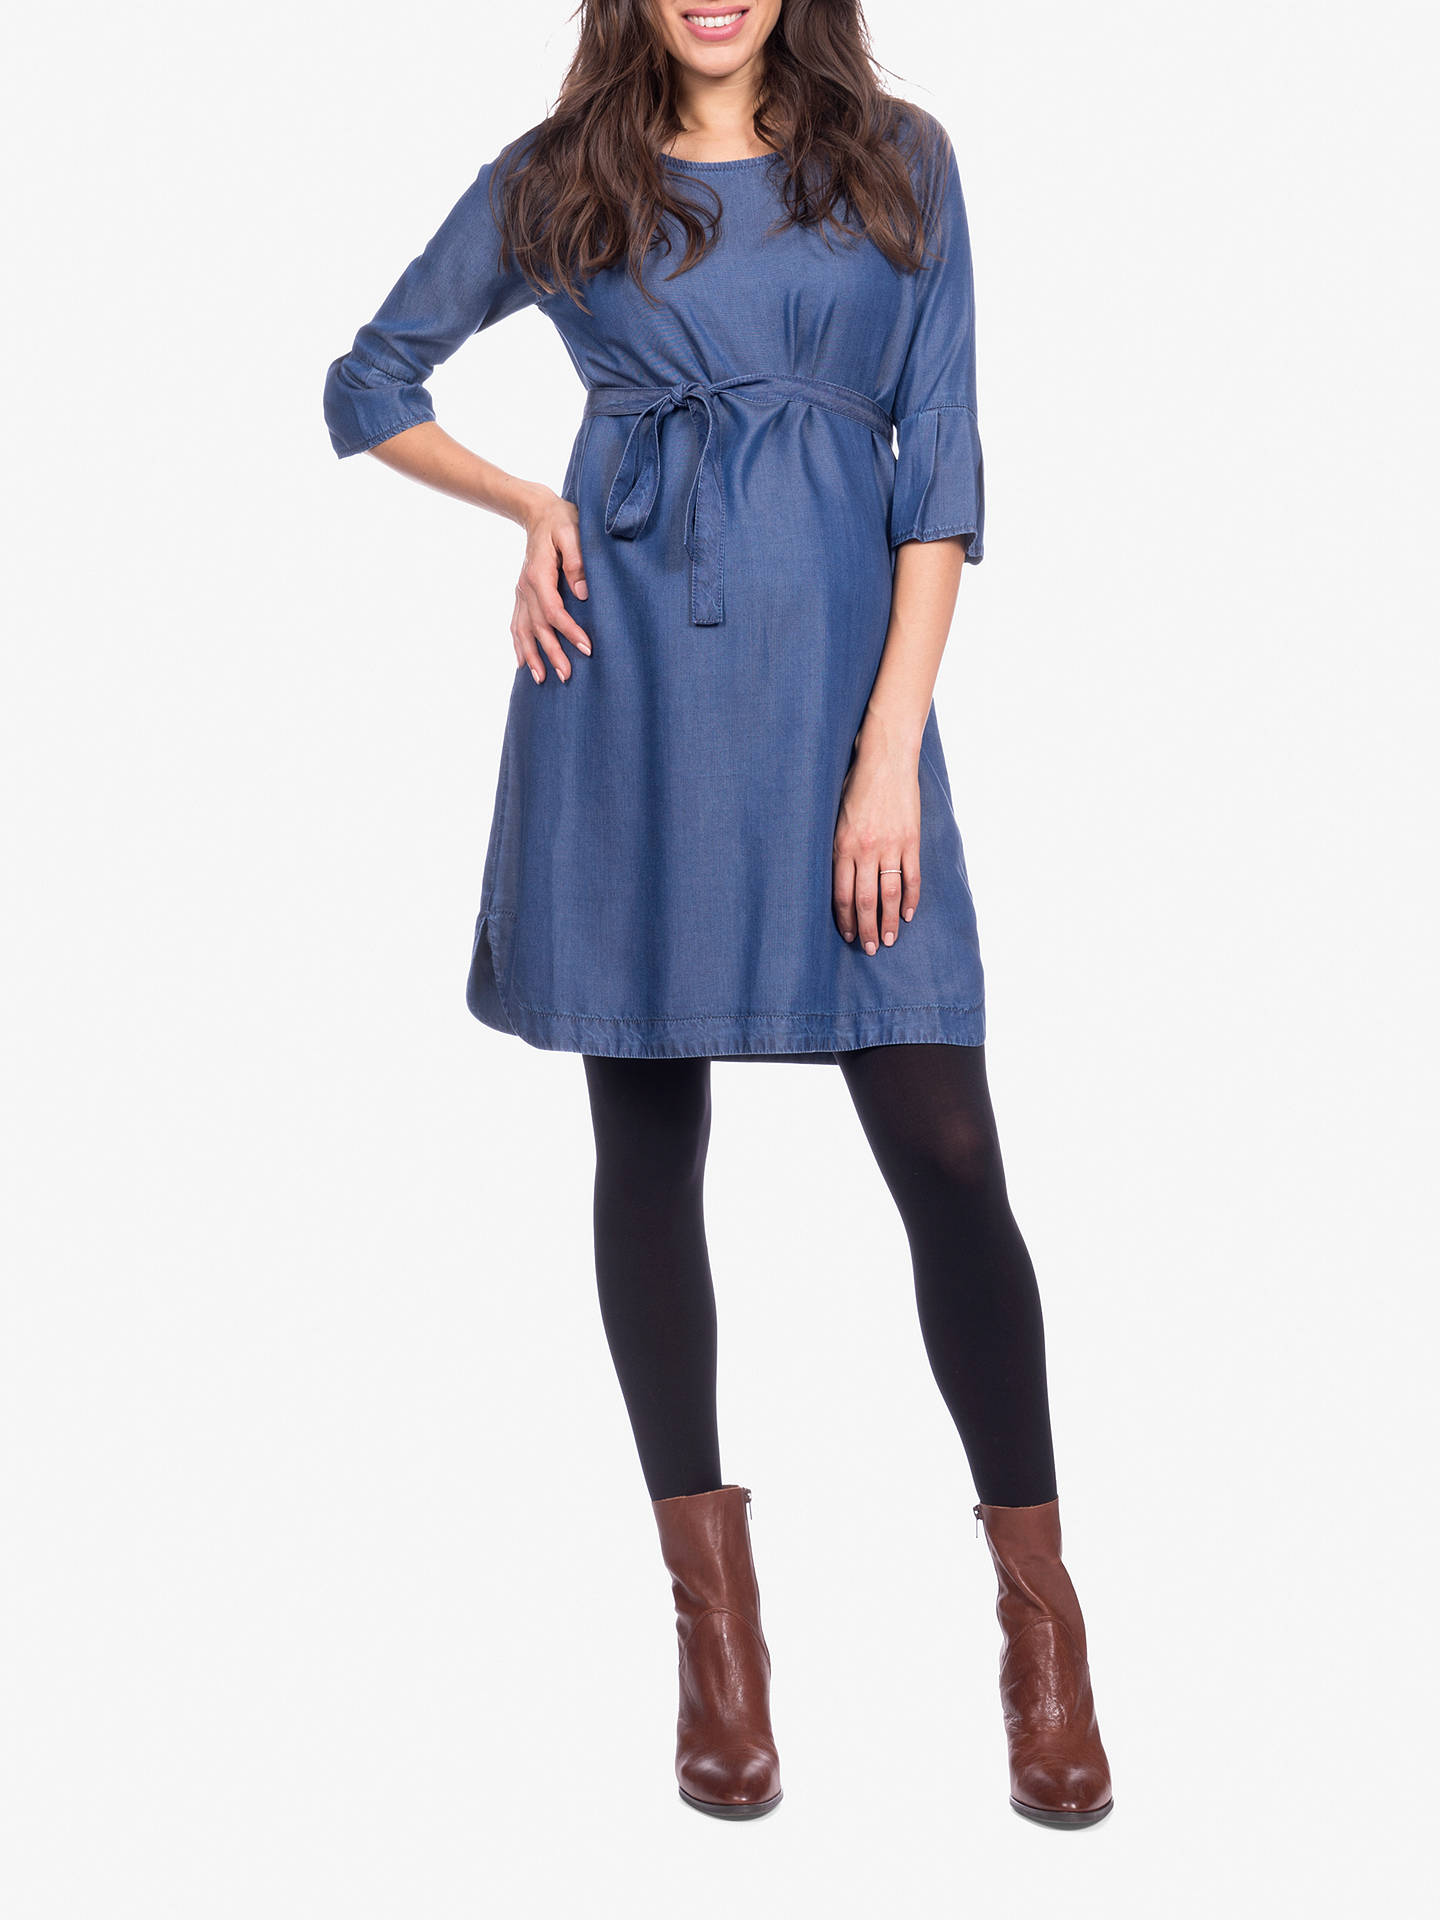 f1ad17ef86e99 ... Buy Séraphine Bernice Chambray Maternity Dress, Blue, 10 Online at  johnlewis.com ...